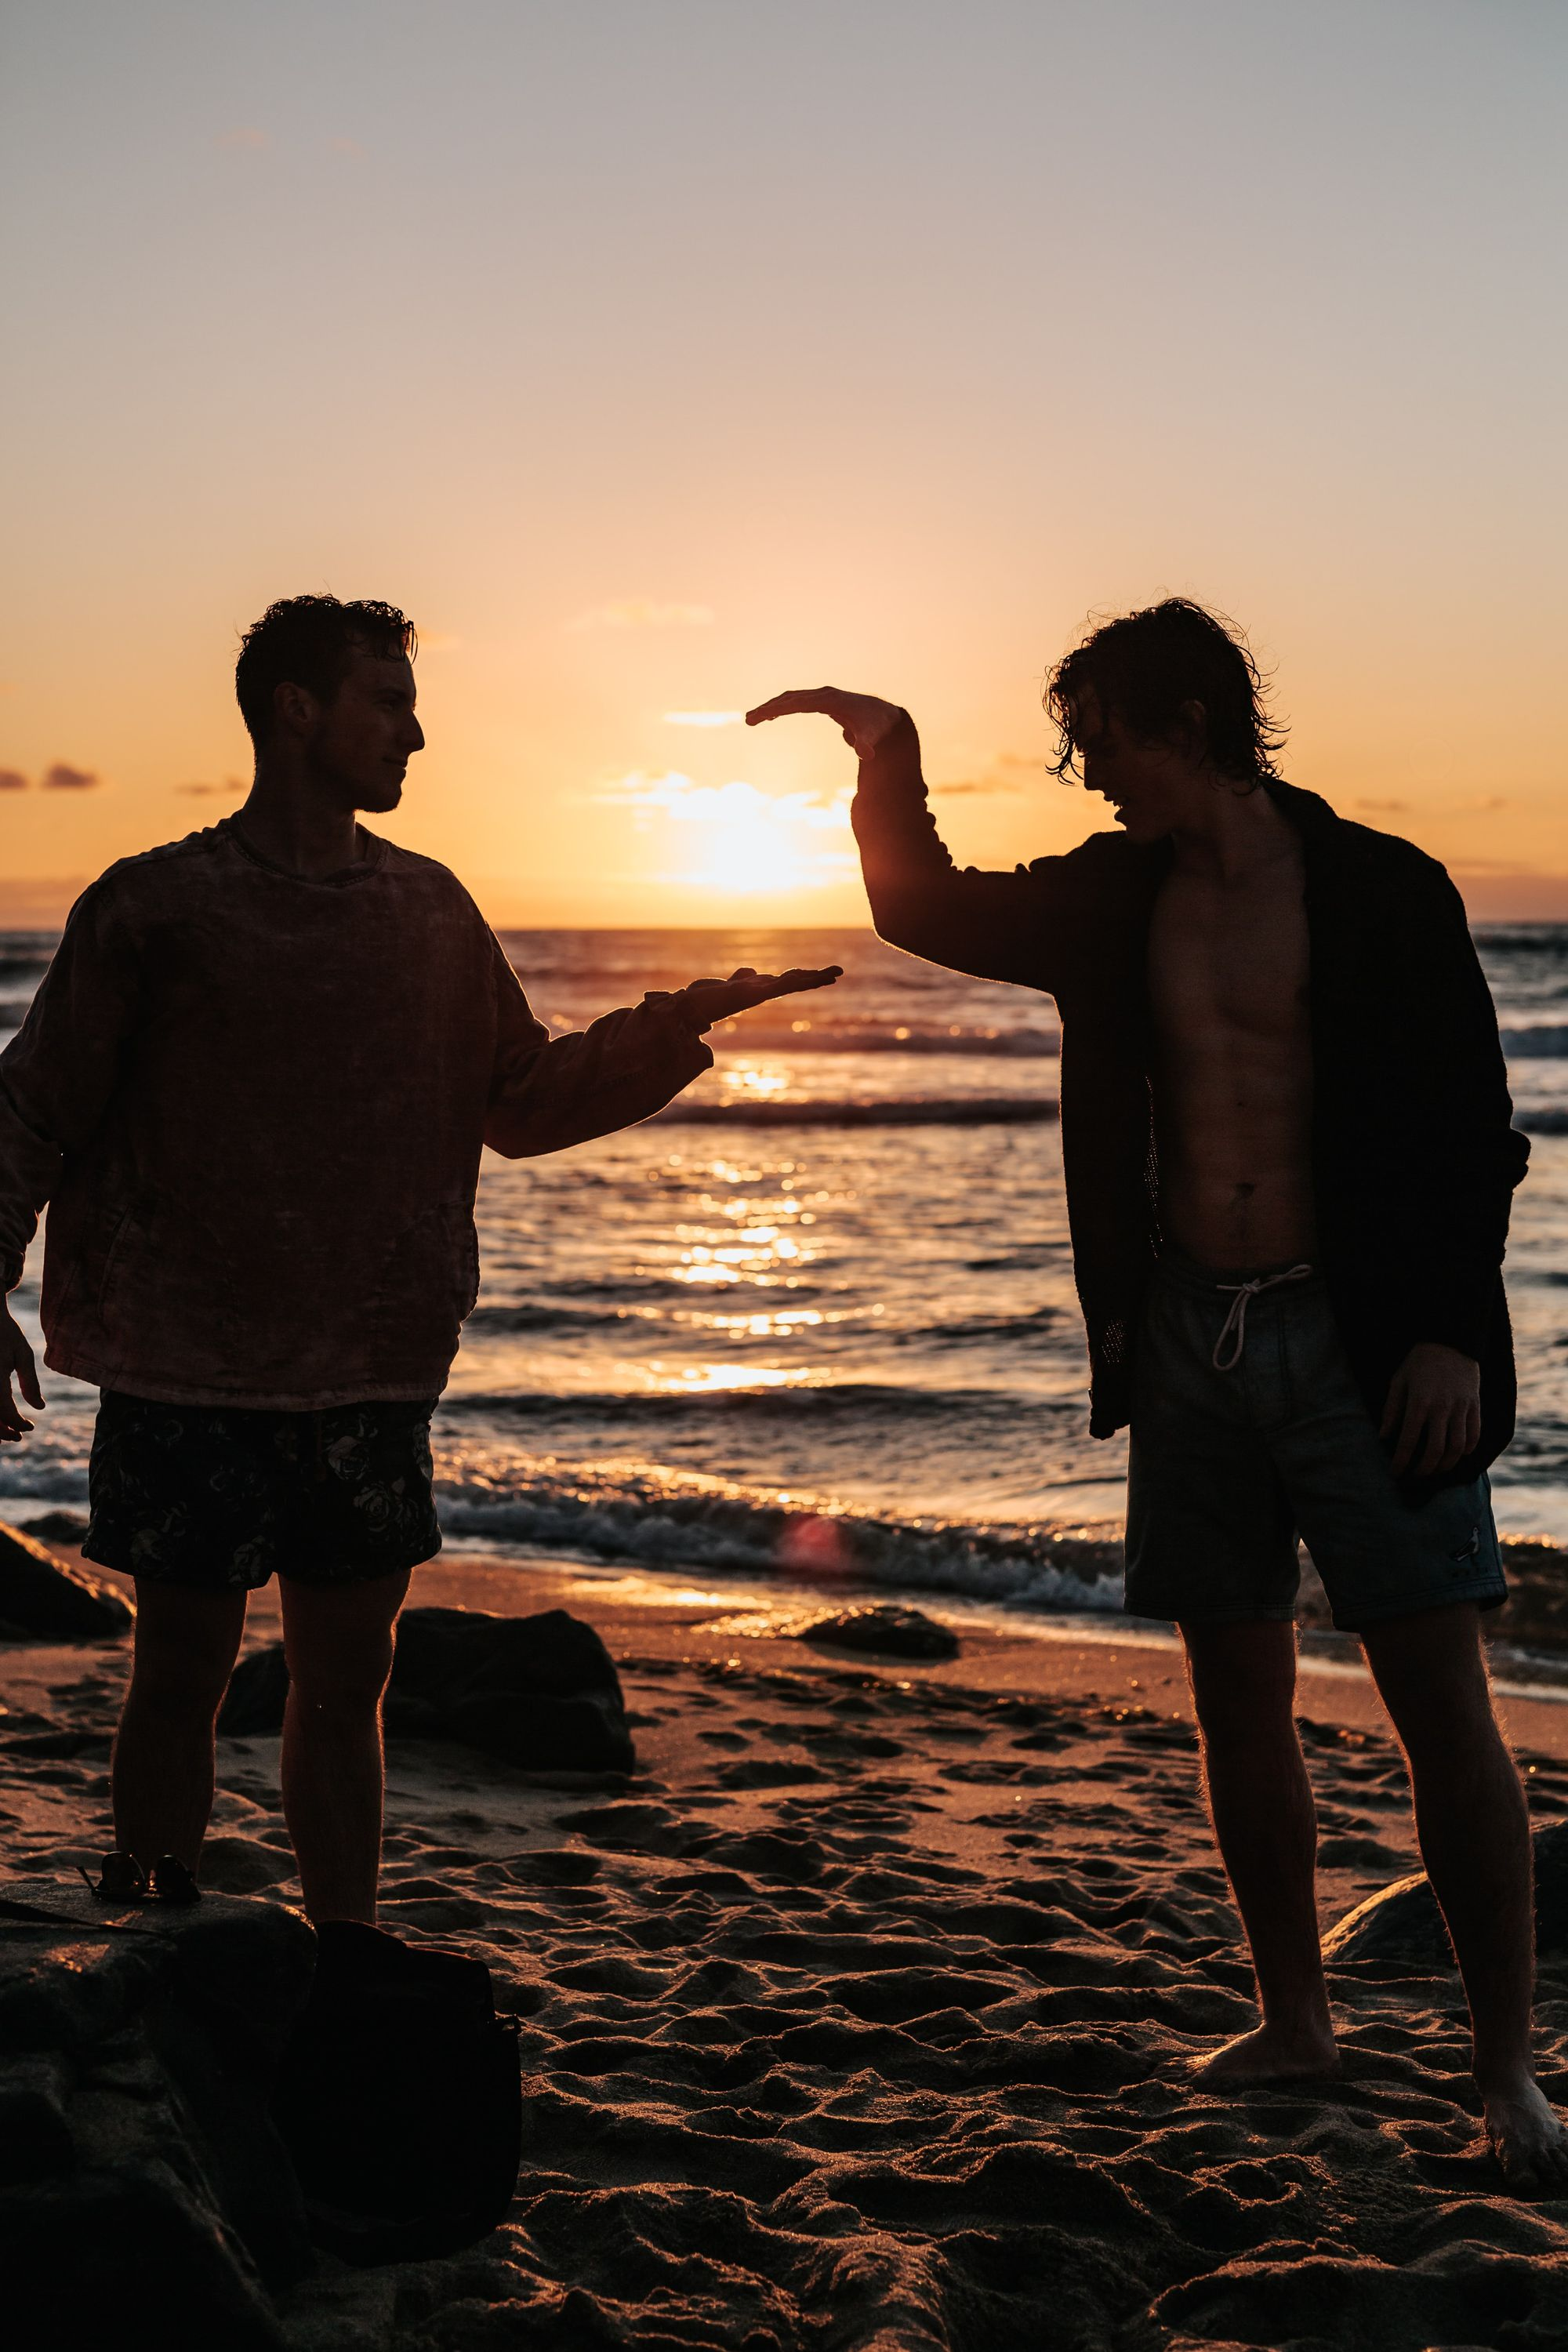 two guys highfiving to strengthen their relationship